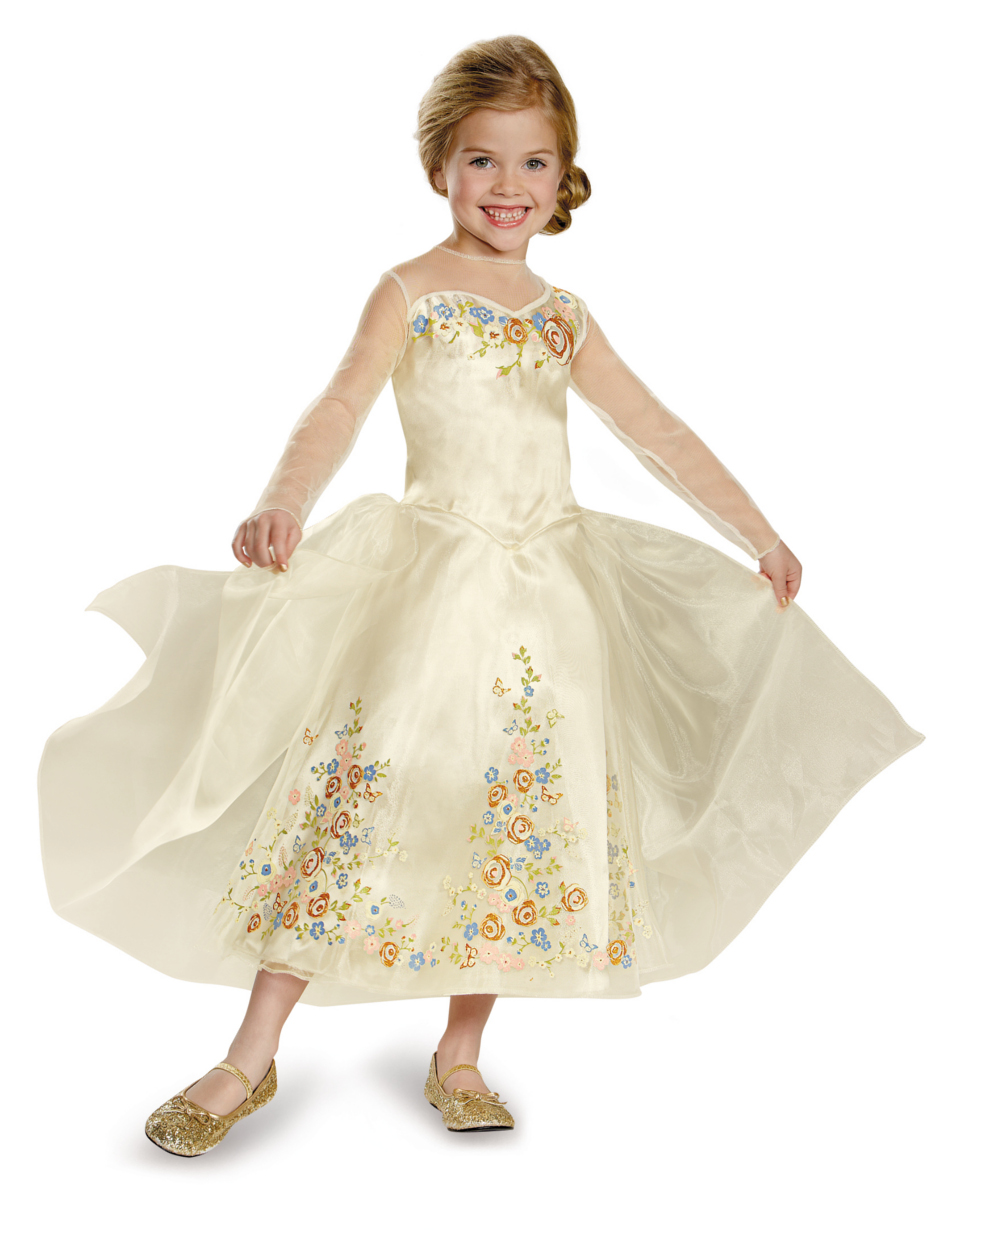 Cinderella Movie Wedding Dress Deluxe Toddler Dress Up / Role Play ...